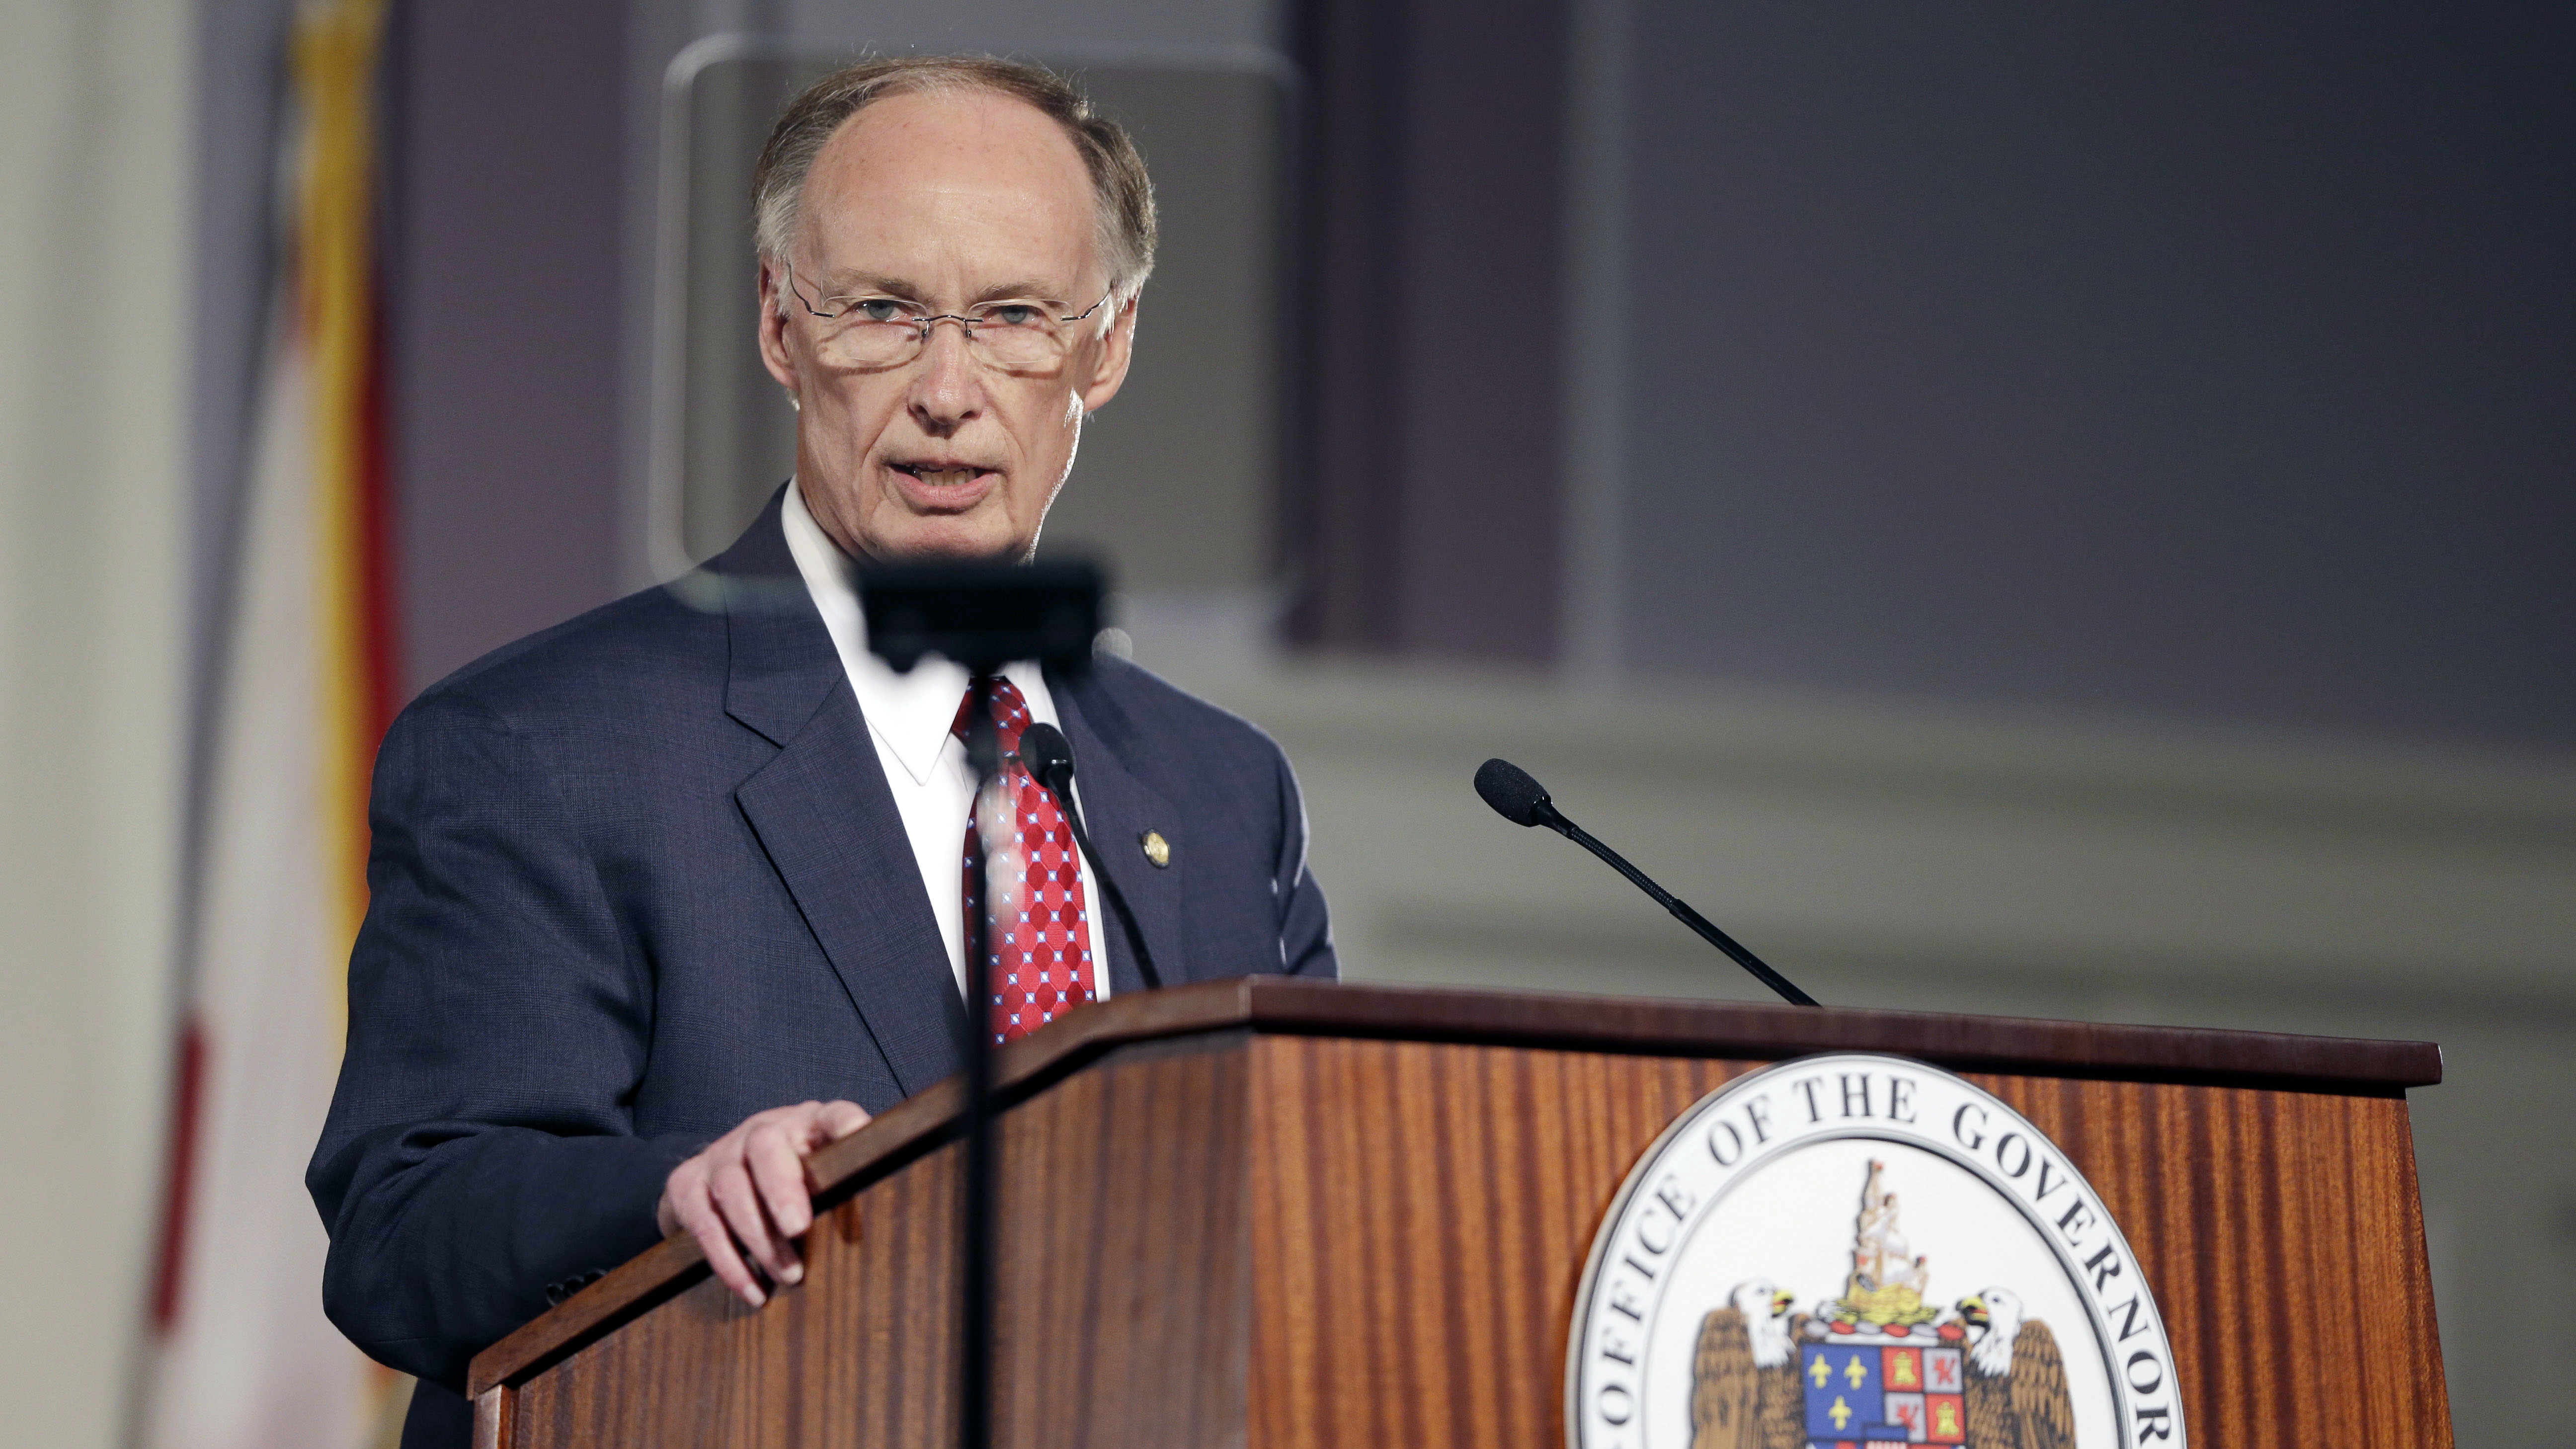 Alabama Gov. Robert Bentley speaks during the annual State of the State address at the Capitol, Tuesday, March 3, 2015, in Montgomery, Ala.